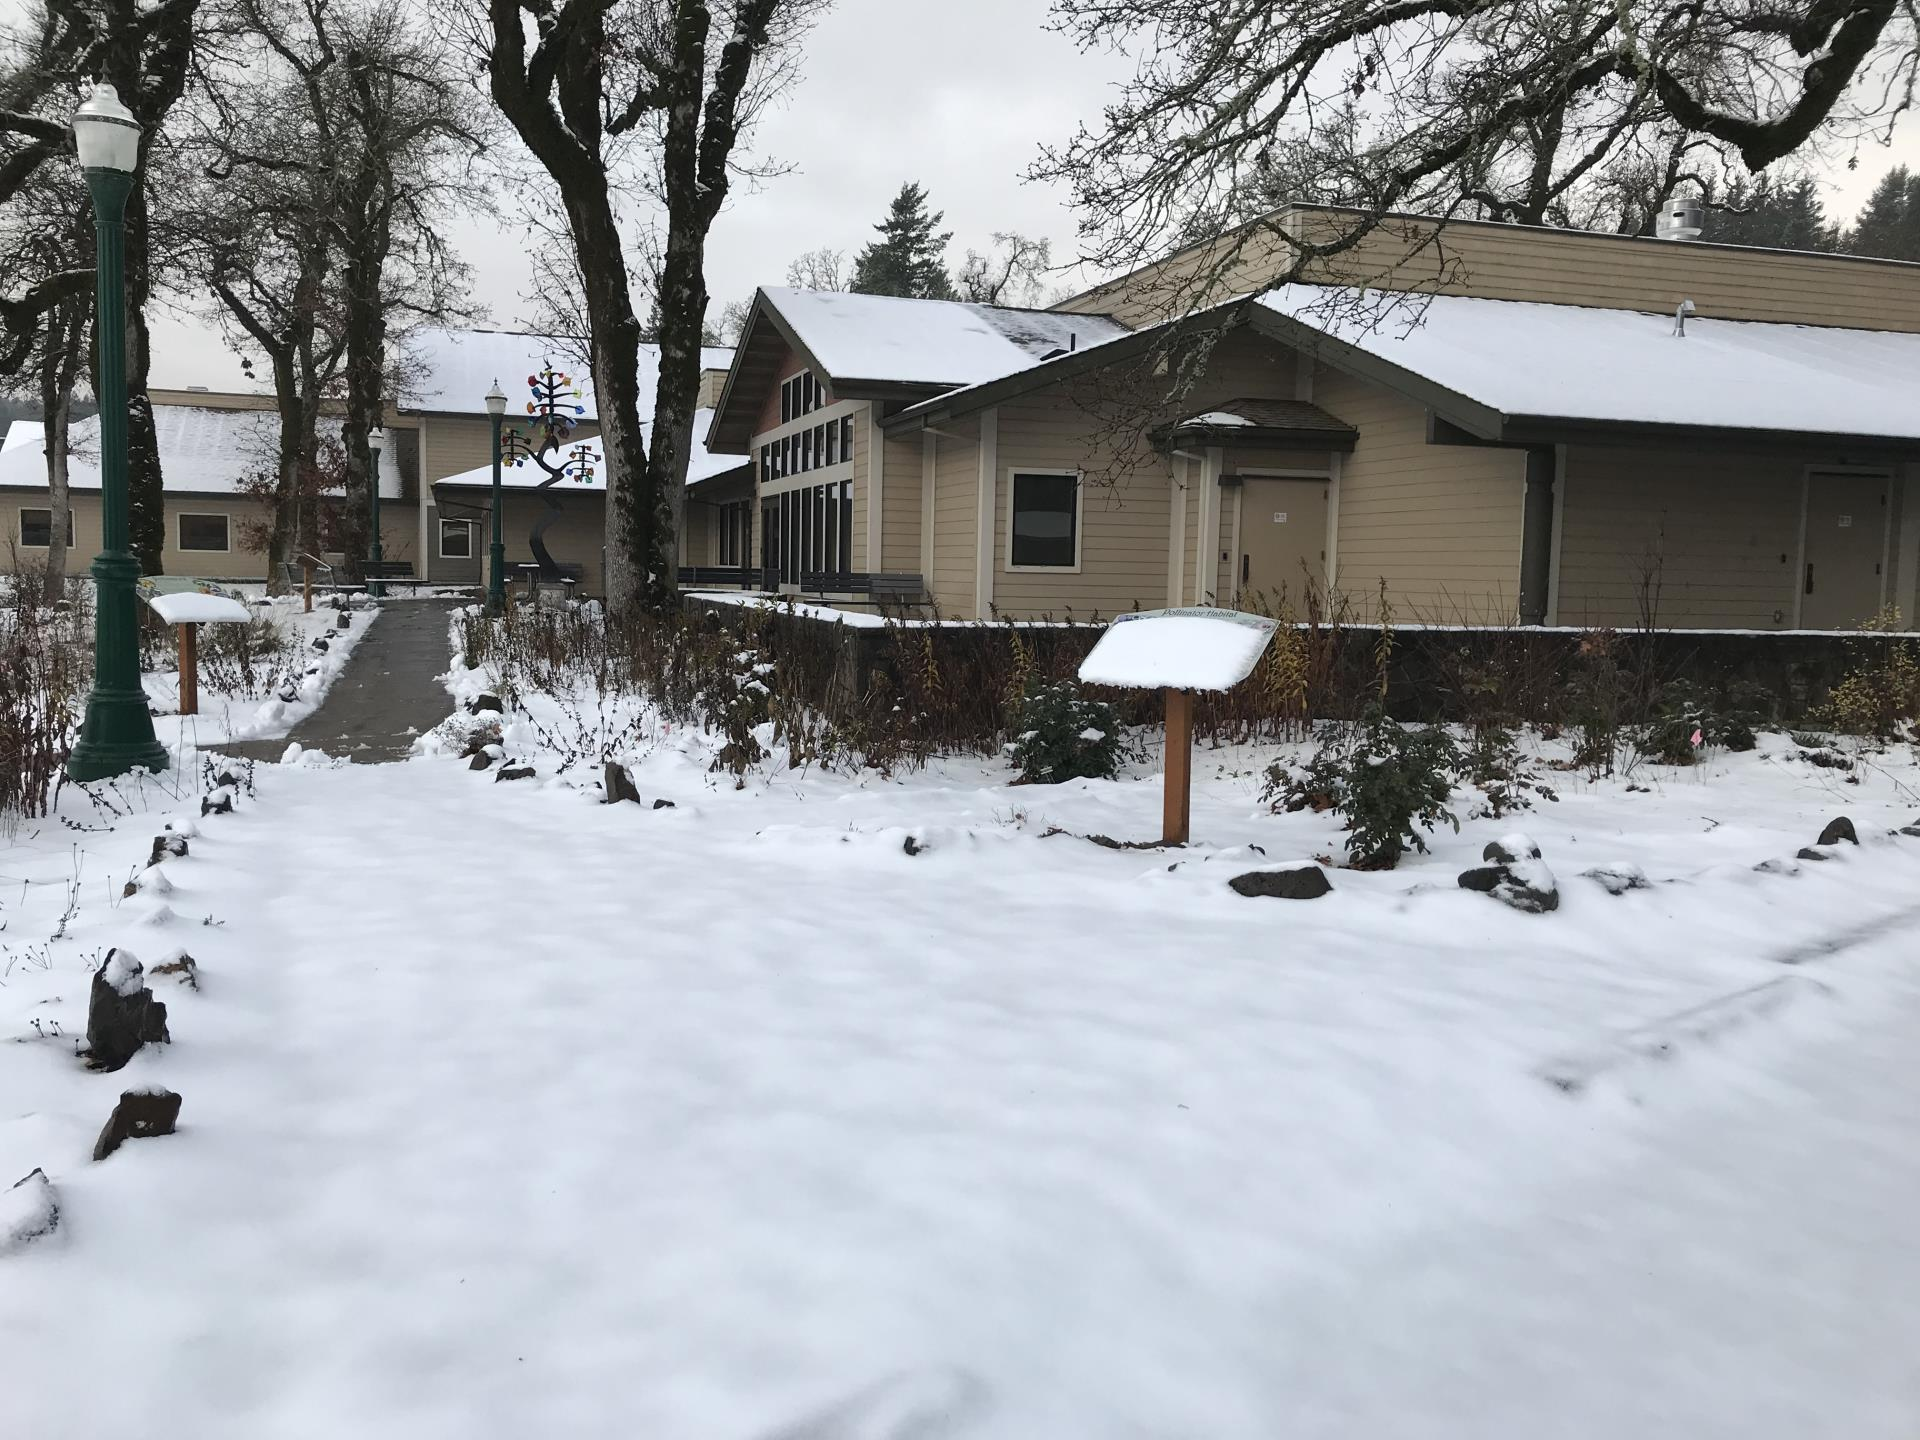 garden under blanket of snow Dec 2019